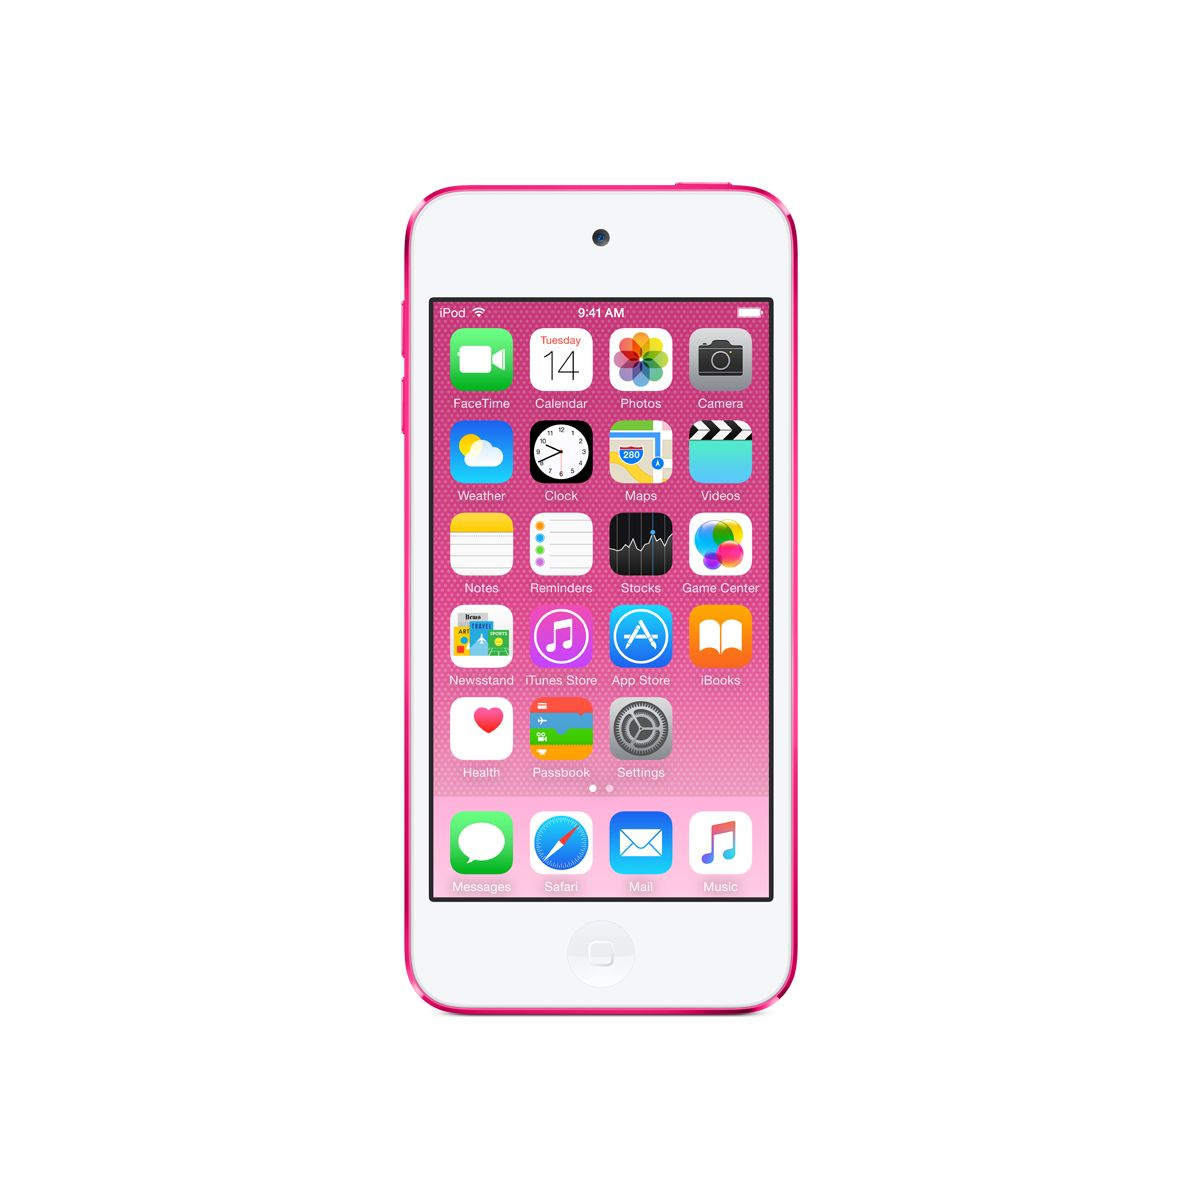 Apple ipod touch 64 go rose - livraison offerte : code livprem (photo)